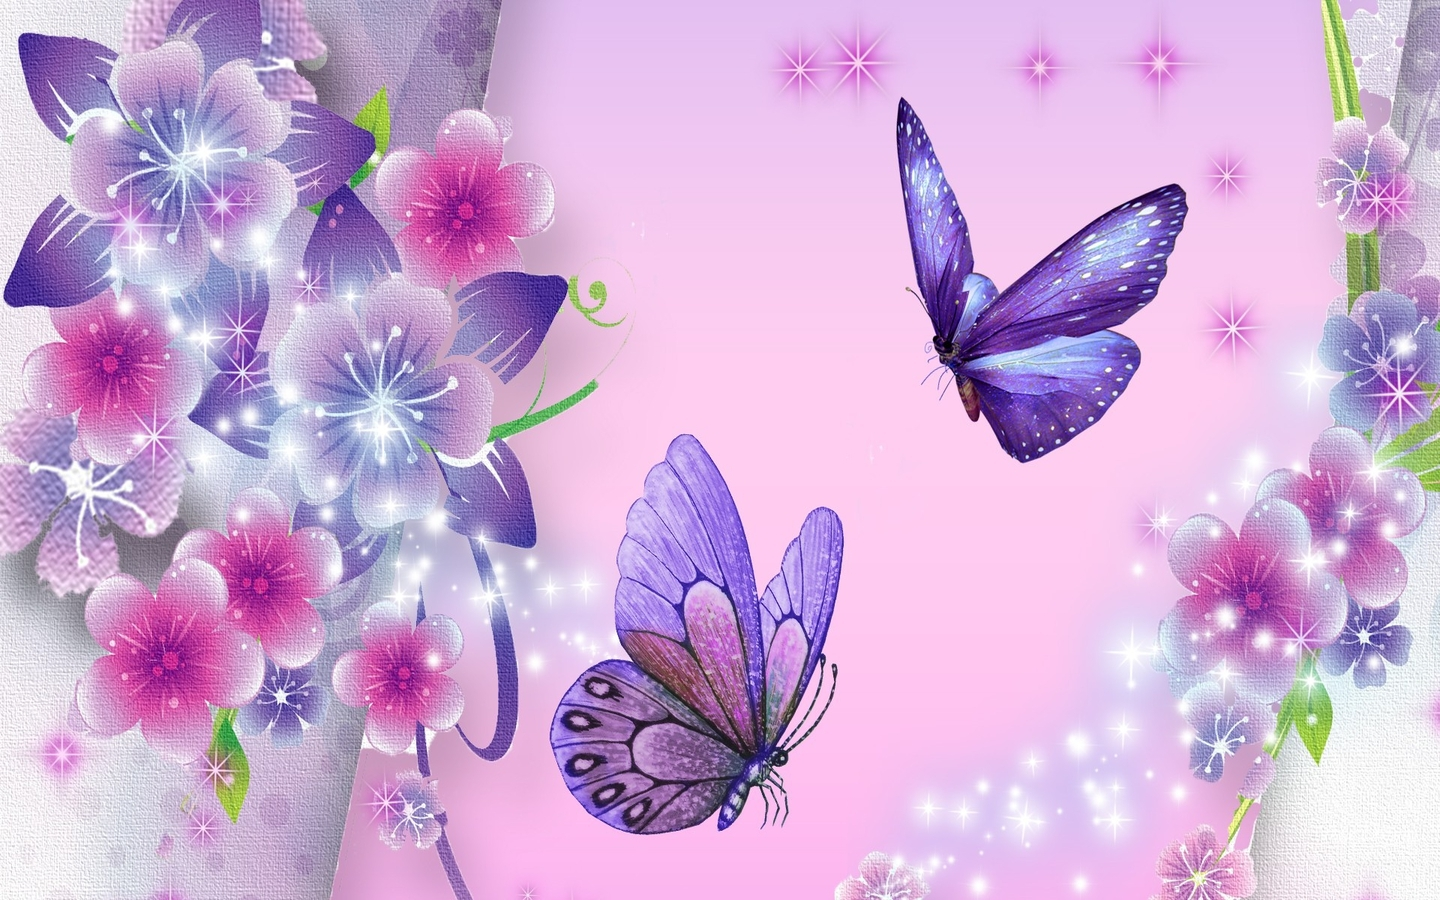 Wallpapers Butterflies to Download 1440x900